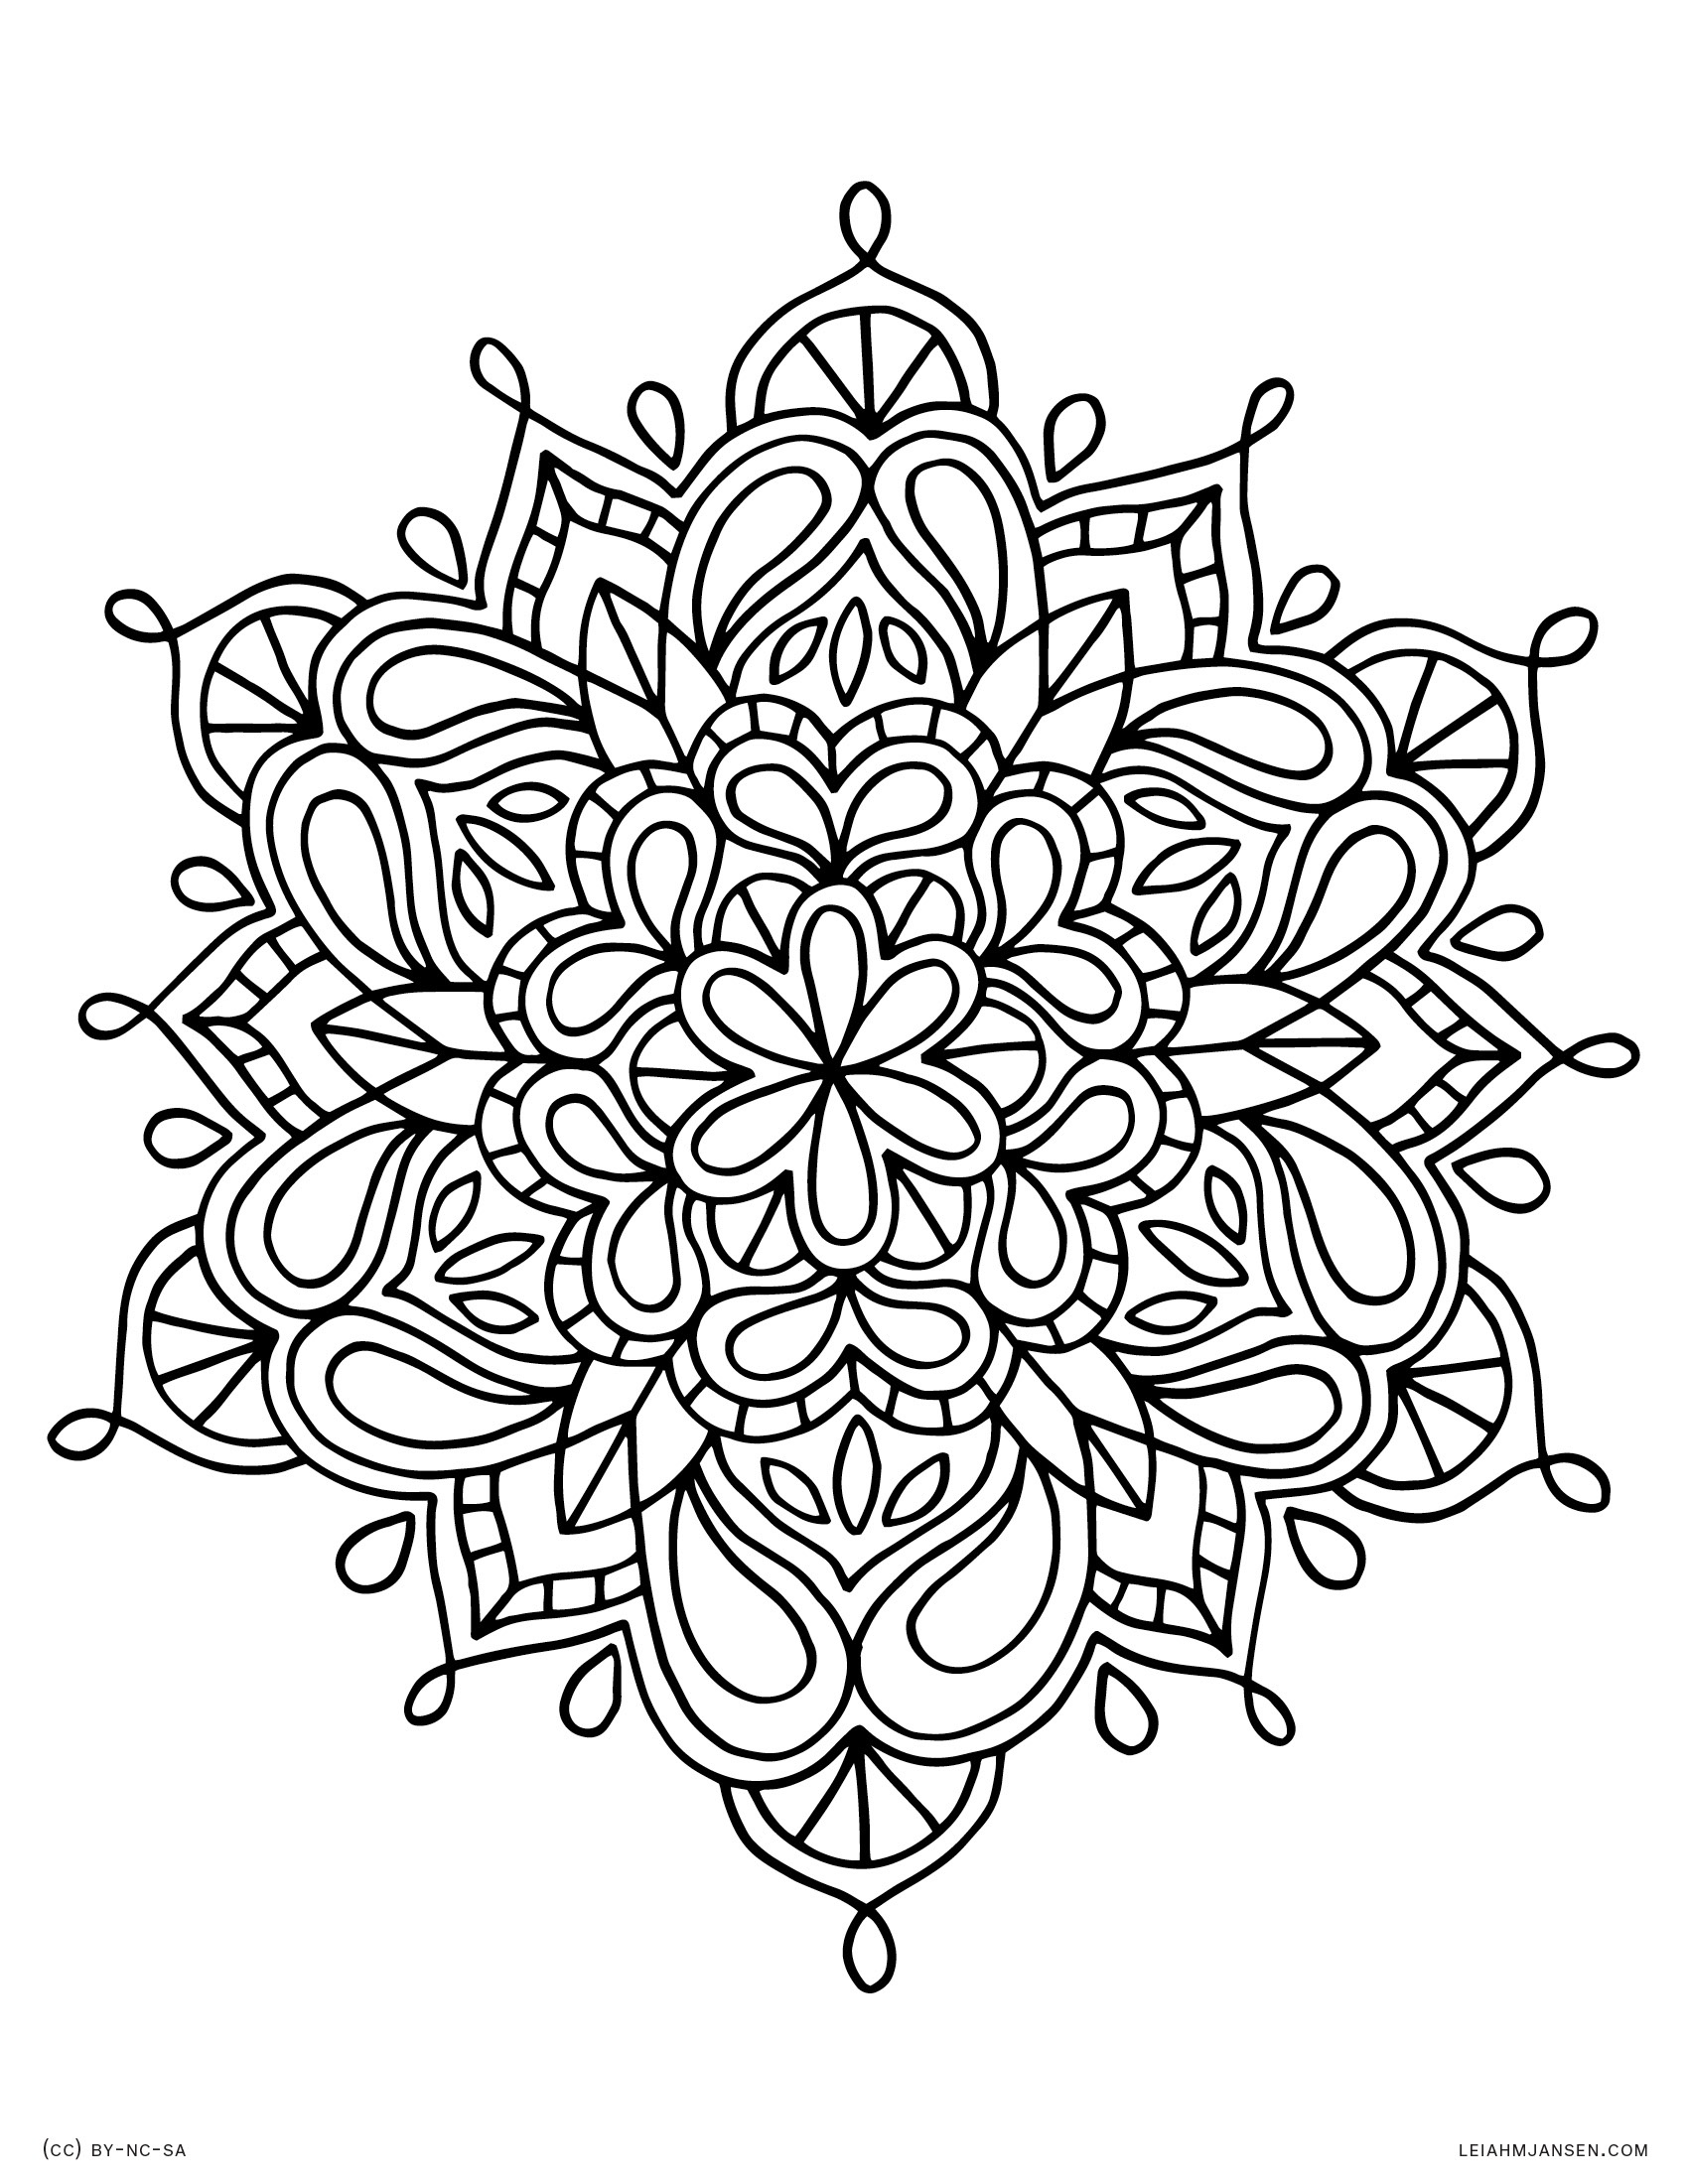 Coloring Pages - Free Printable Coloring Sheets